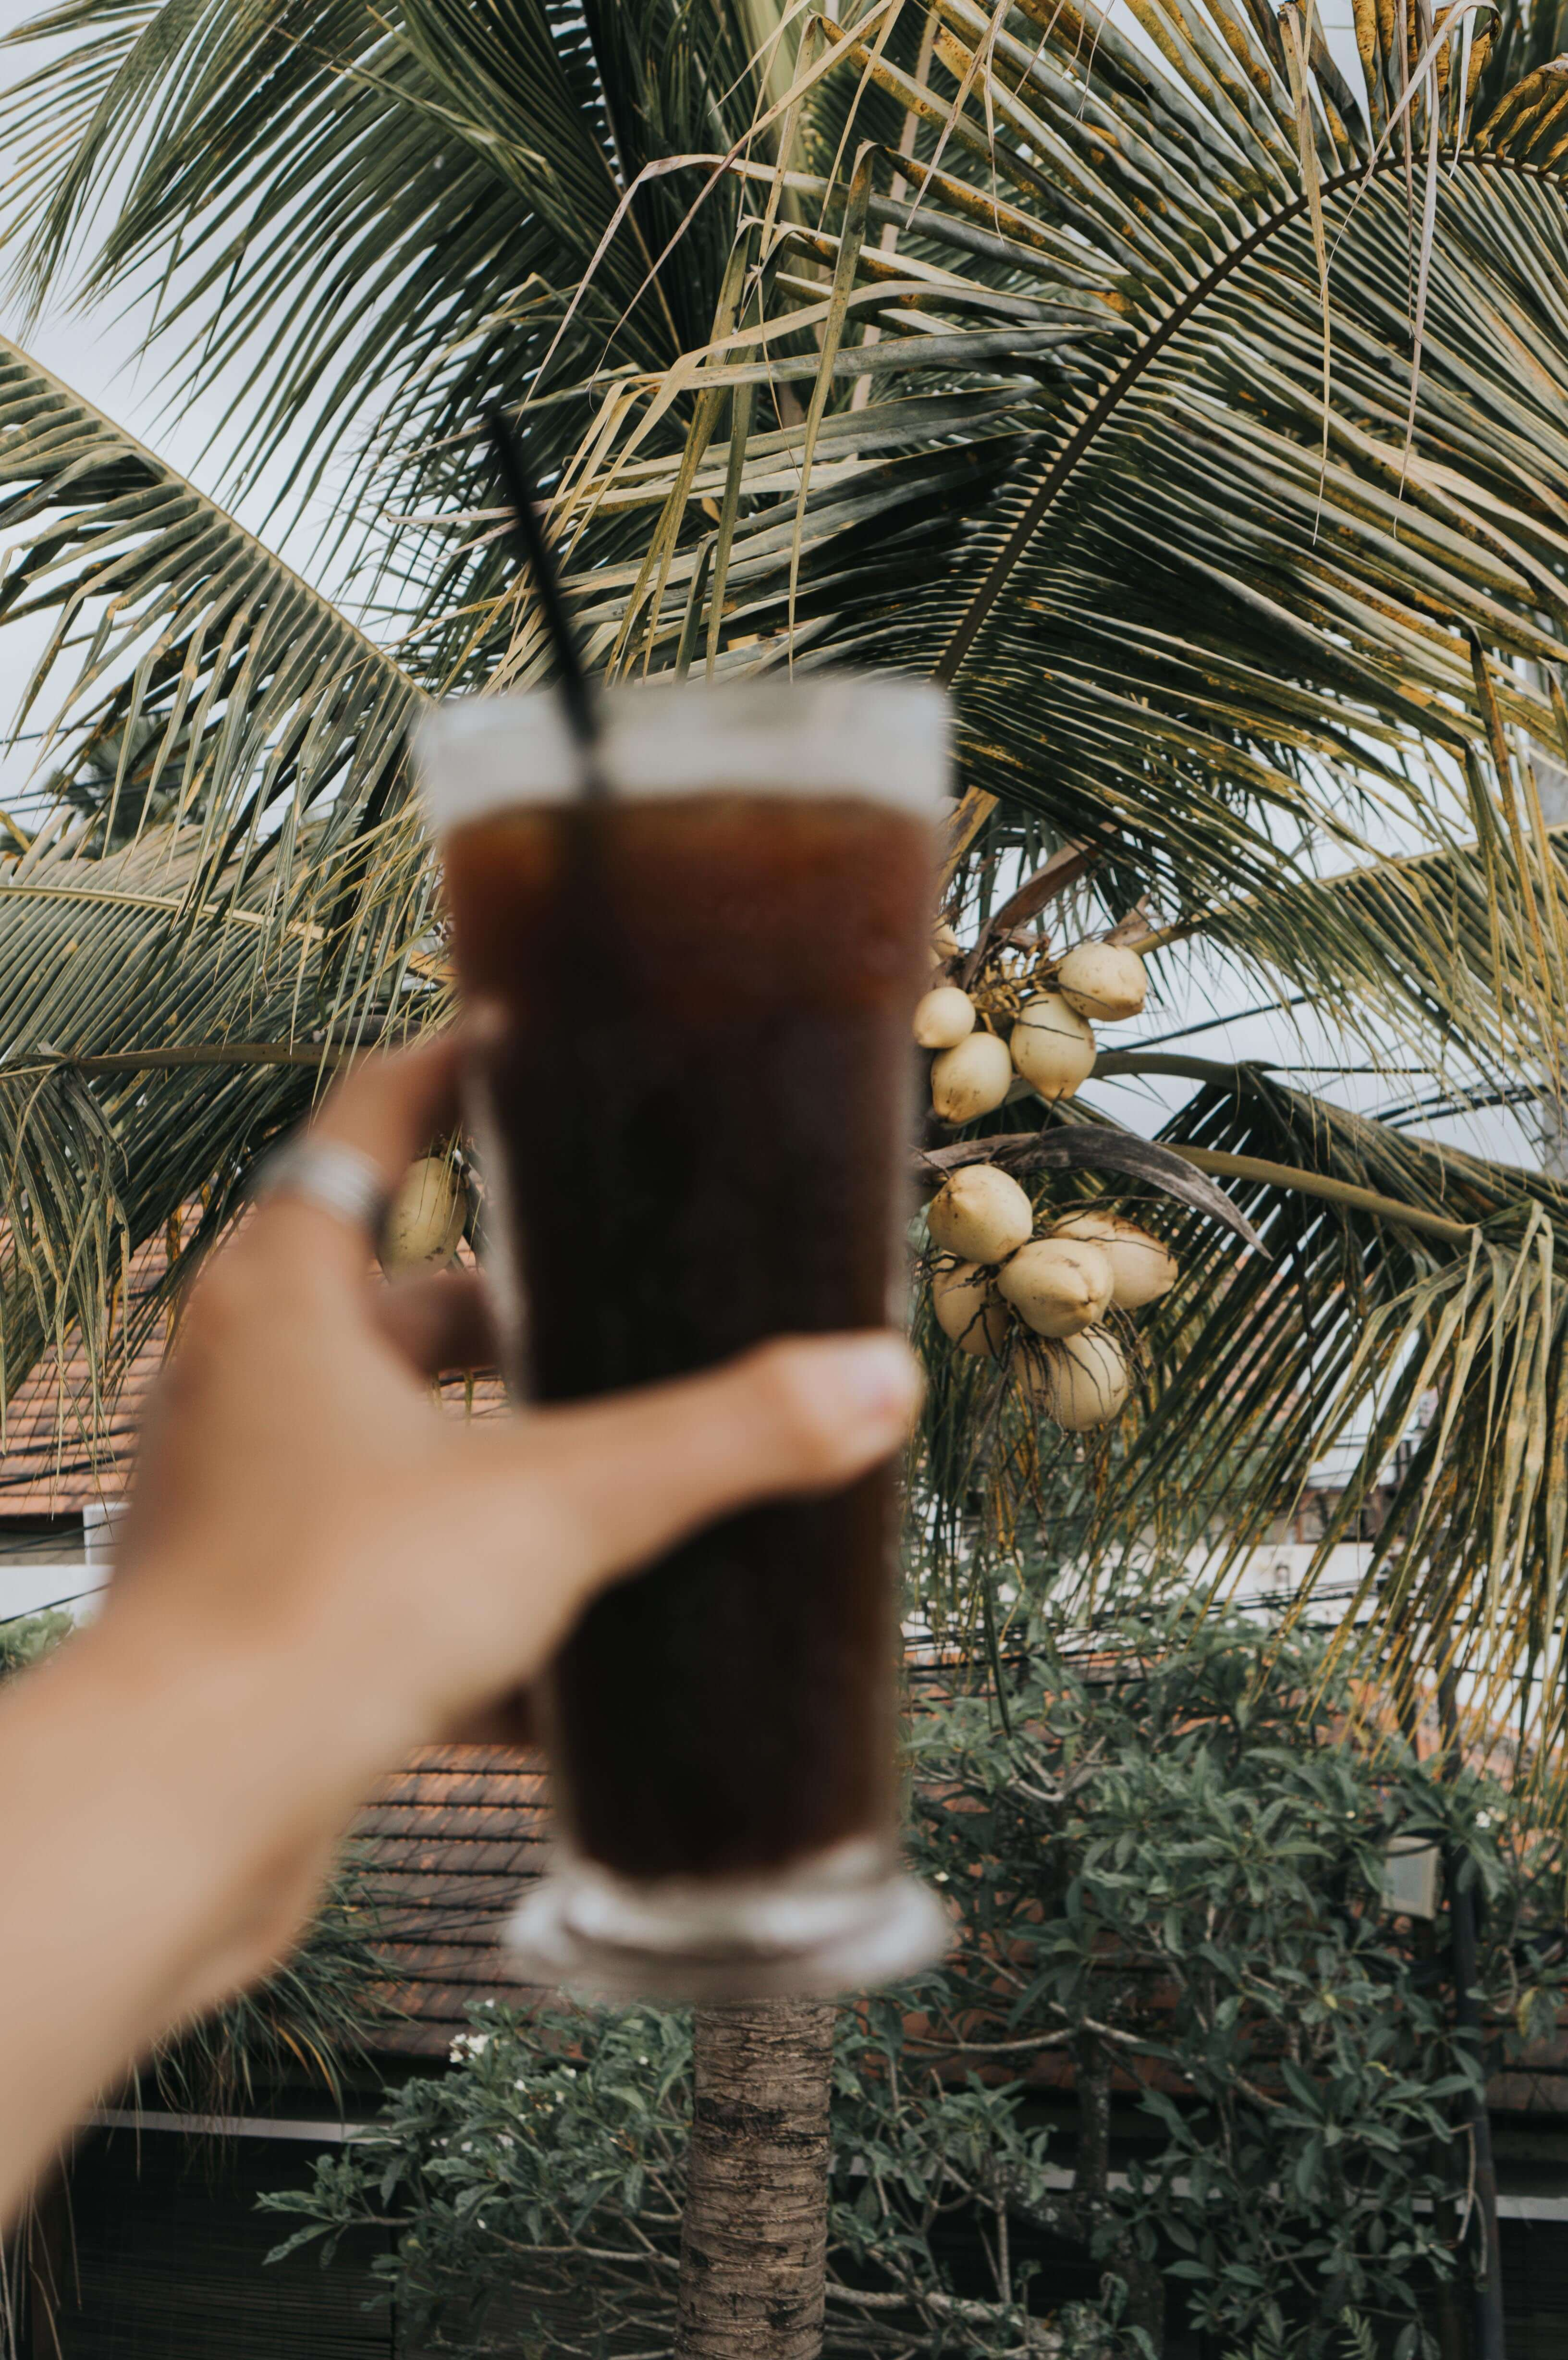 Coffee and palm trees